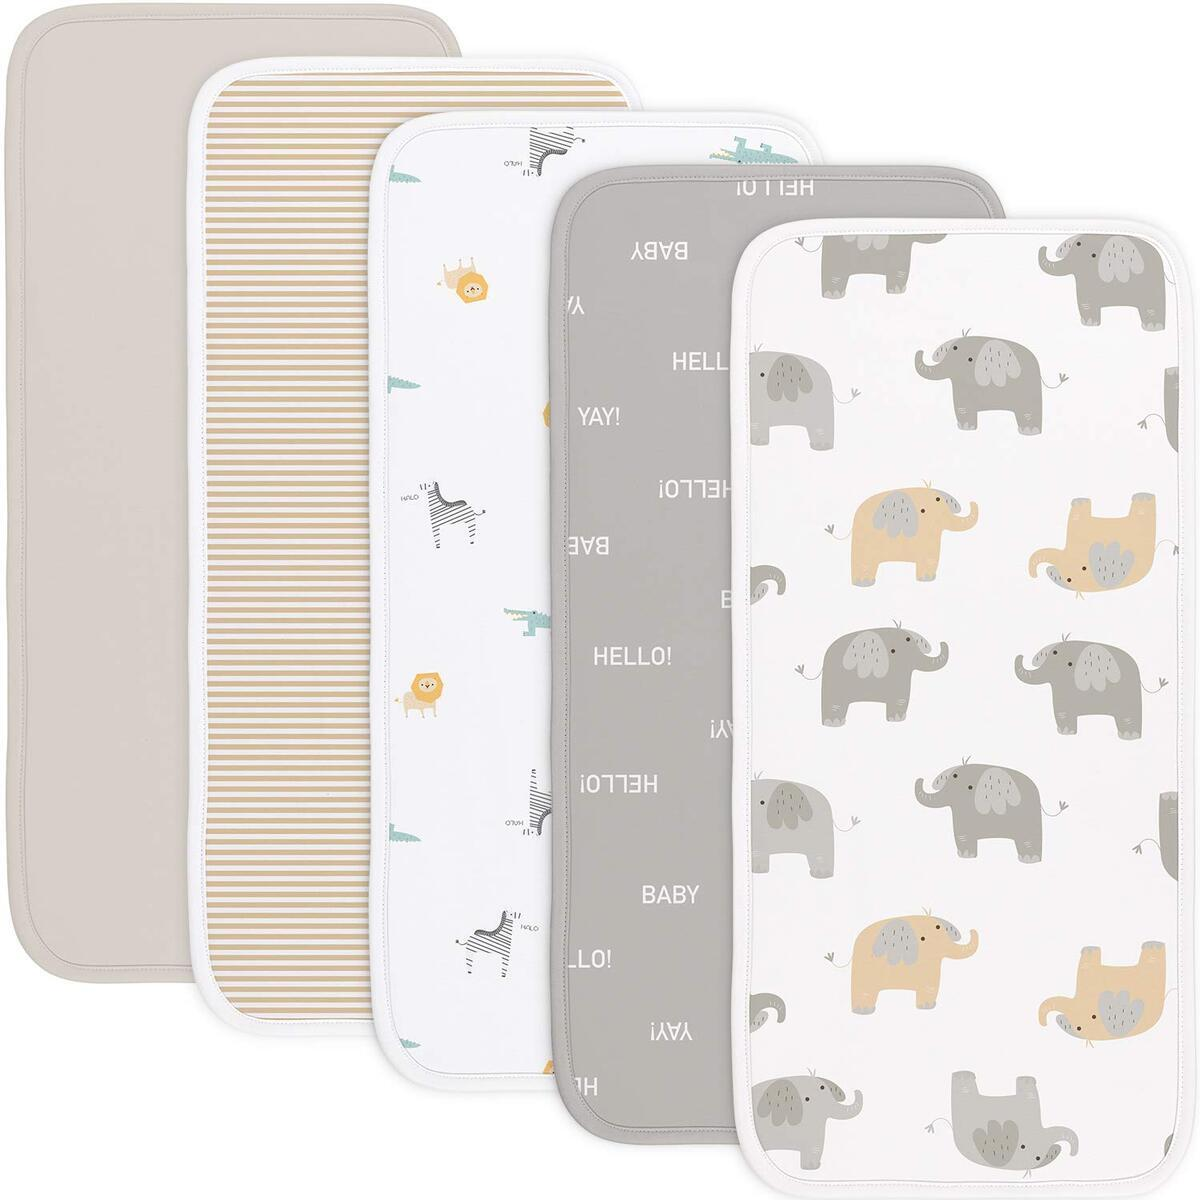 Babebay Burp Cloths for Baby Boys and Girls - Animal Design - 5 Pack 100% Combed Cotton Baby Burp Set, Extra Absorbent & Soft Burping Cloth, Baby Spit Up Cloth, Burp Cloths for Newborn